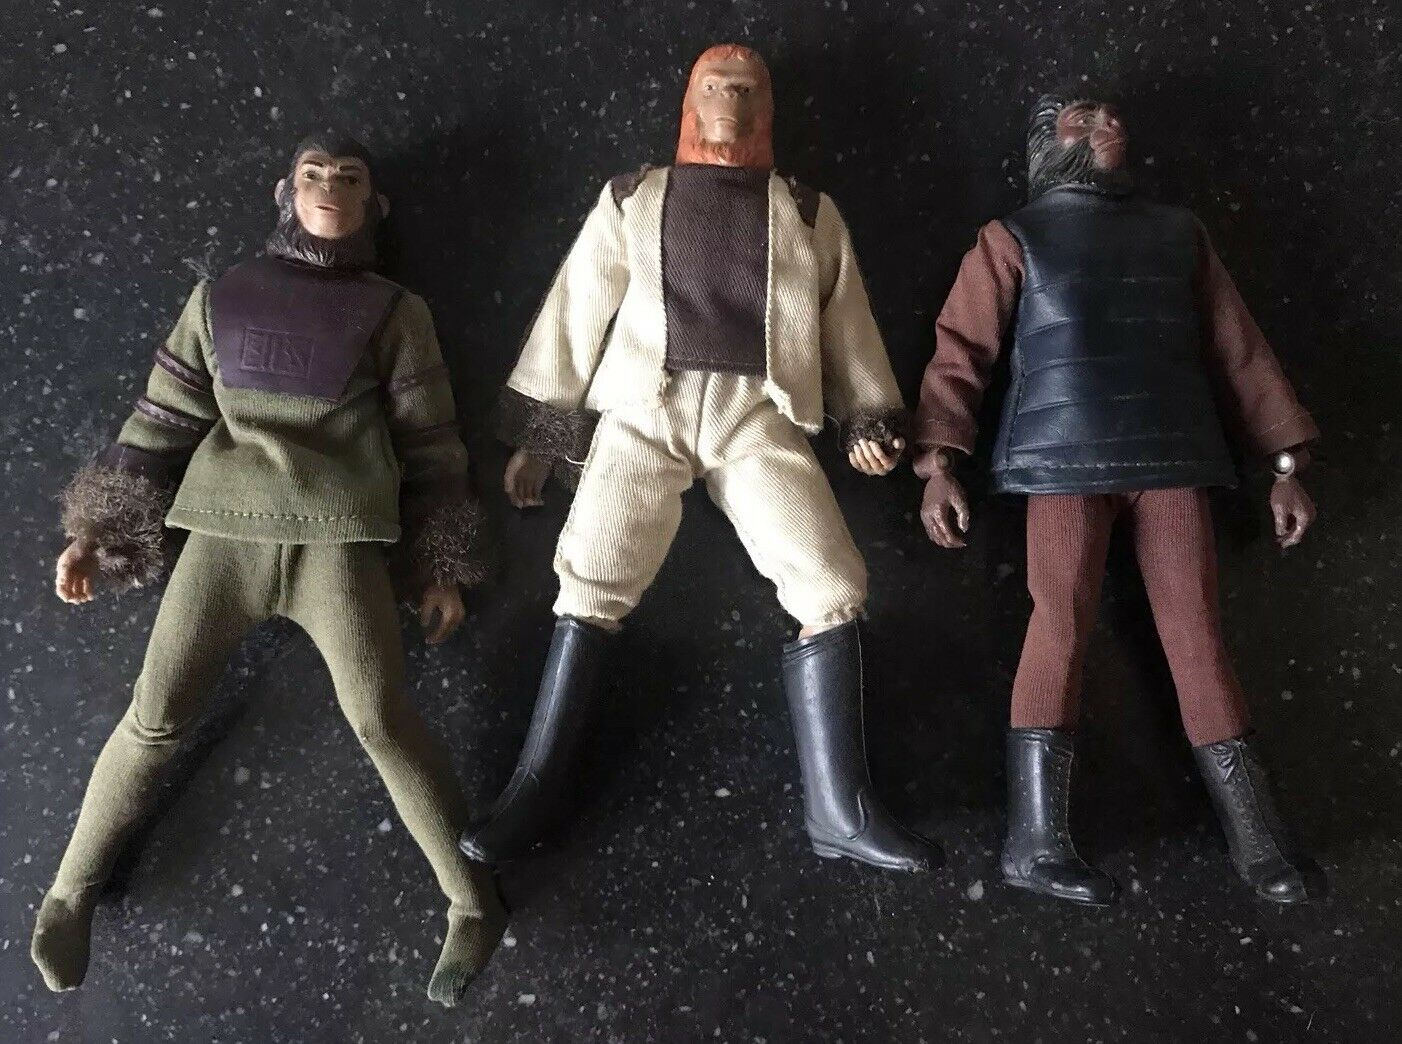 3 Vintage 1974 Mego Planet of the Apes Action Figures Cornelius, Doctor Zaius...